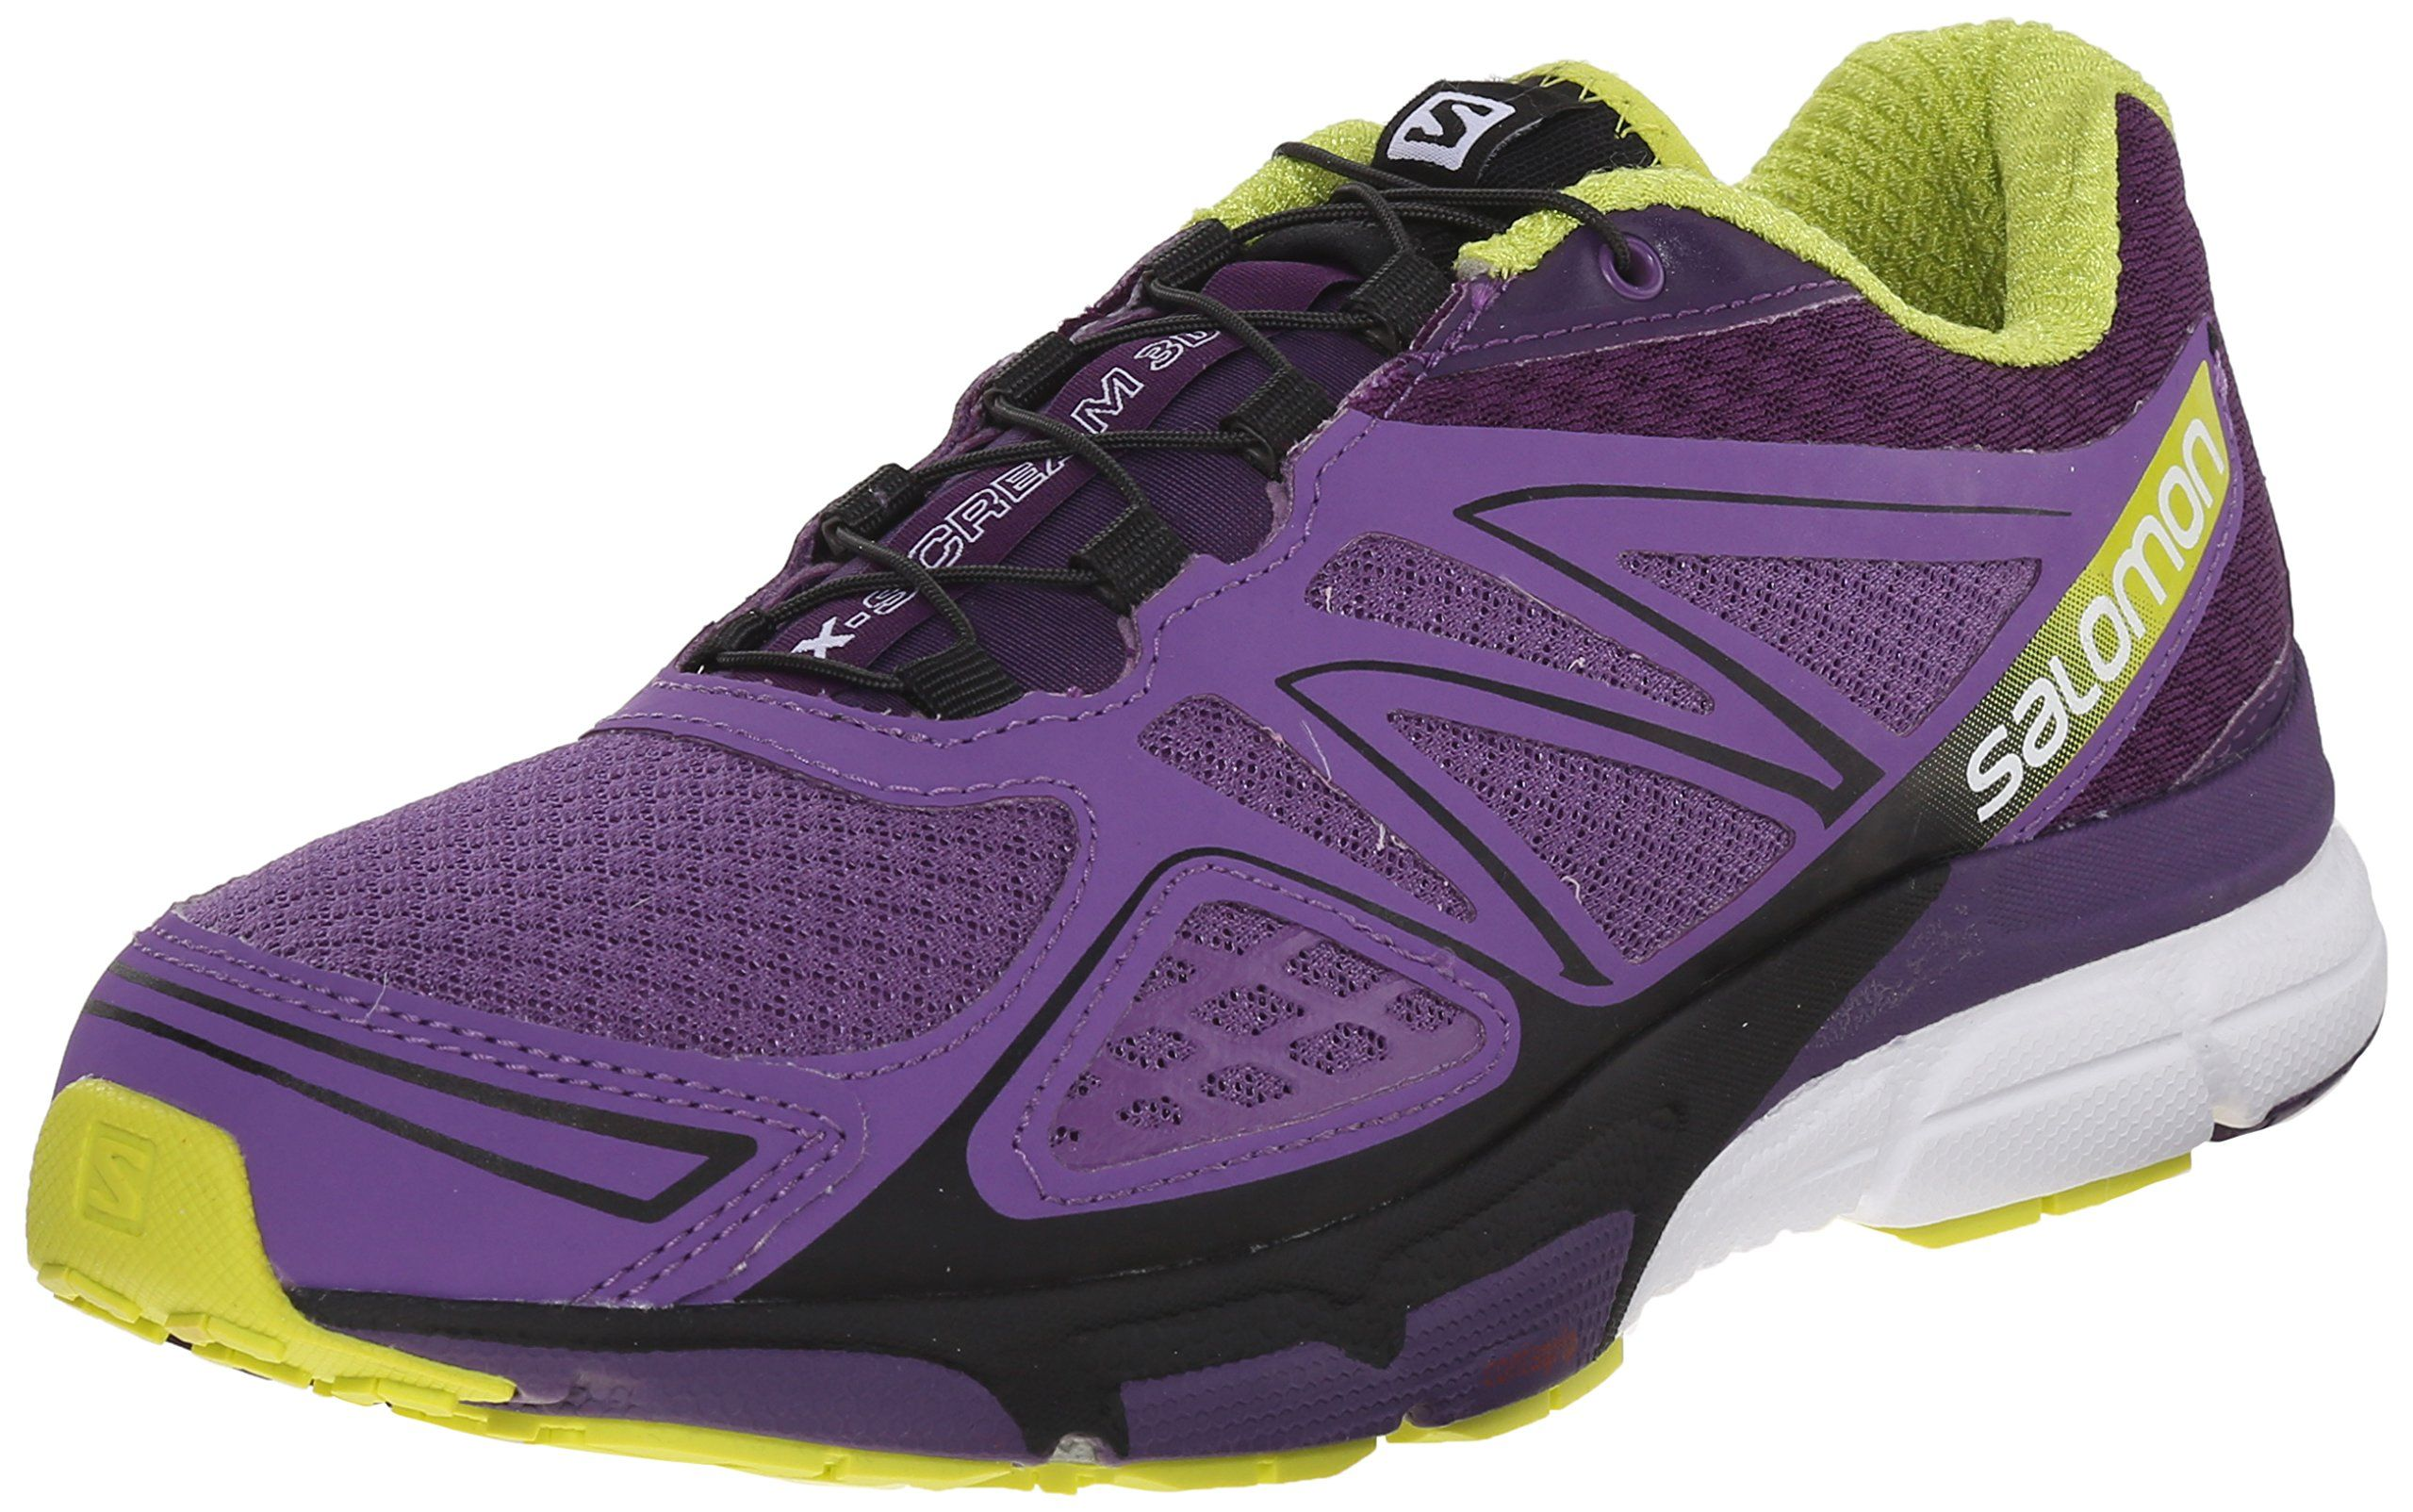 Salomon Women s X-Scream 3D W Trail Running Shoe e648ea70594